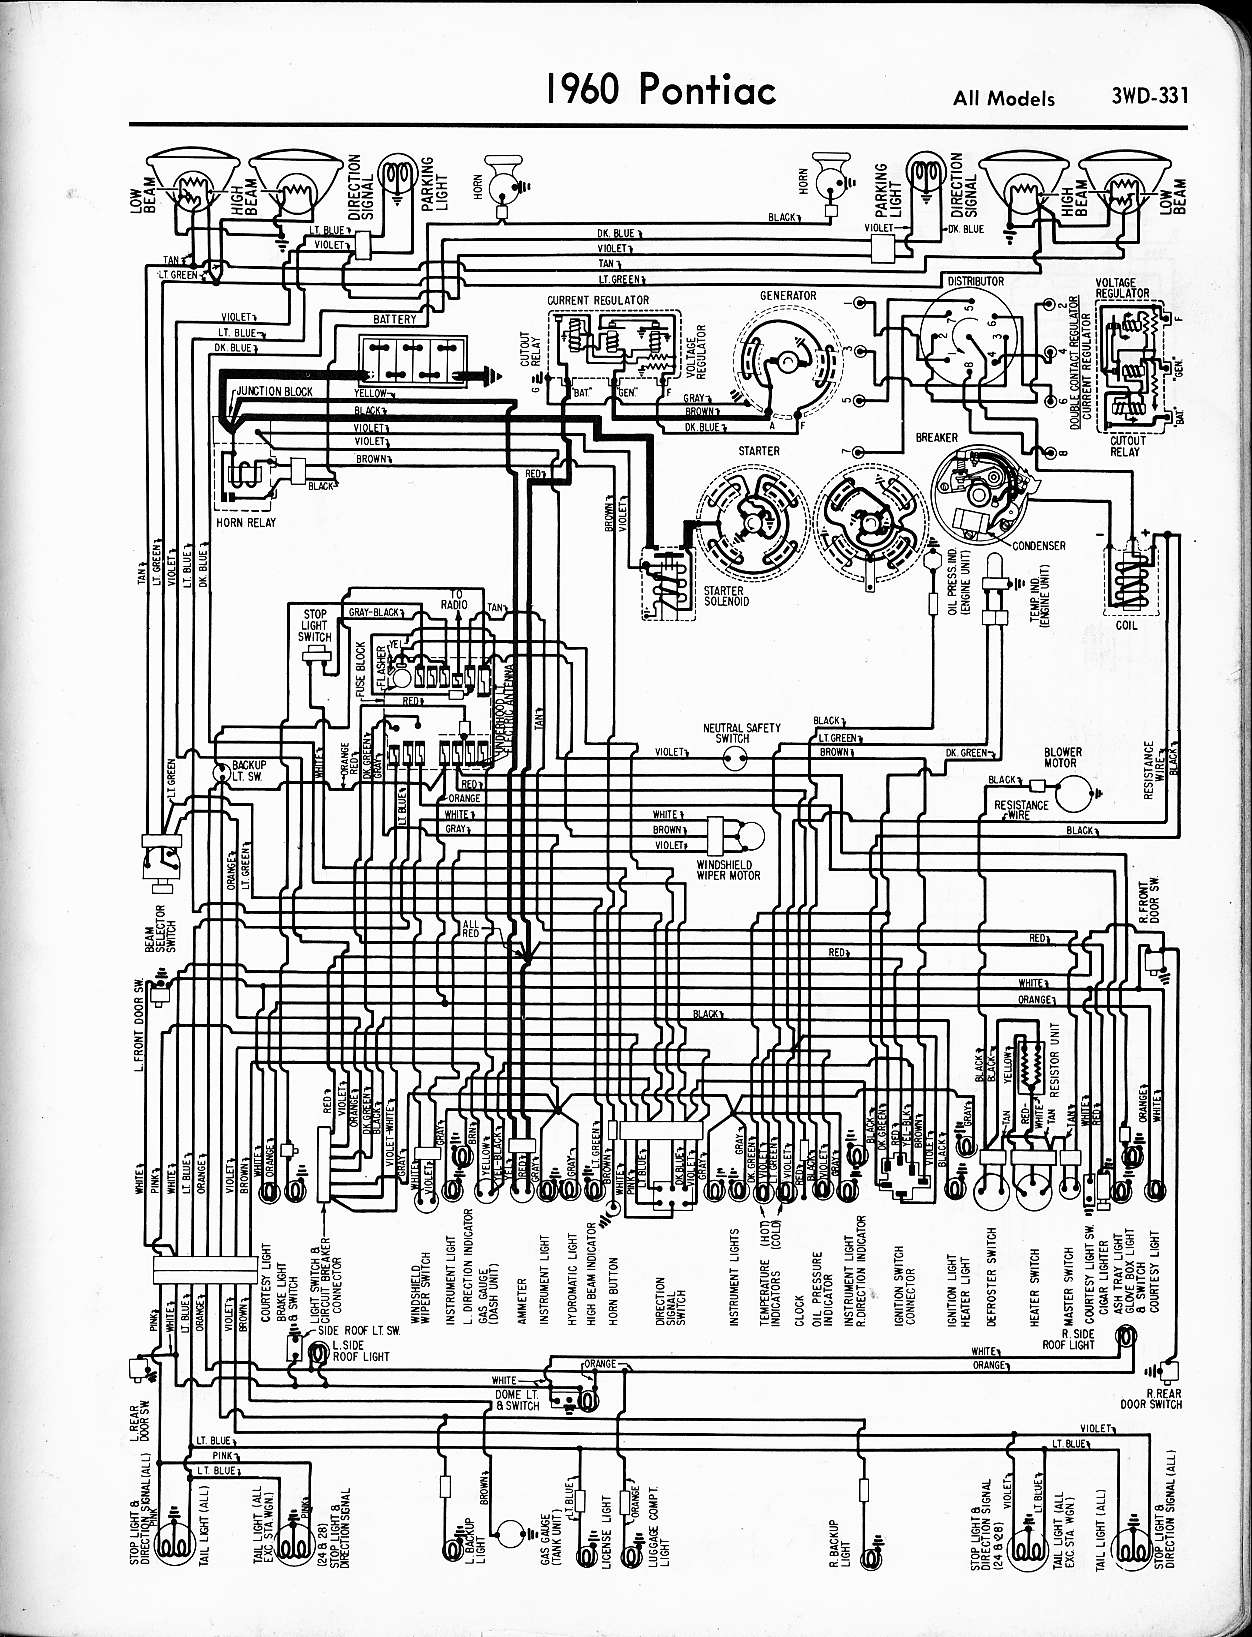 1960 Oldsmobile Wiring Diagram - Simple Wiring Diagram Site on free auto wiring schematic, free car repair manuals, free vehicle diagrams, free chilton diagrams, free car parts, electrical diagrams, free diagram templates, free schematic diagram, free auto diagrams, free home, free honda wiring diagram, free car schematics, free electronic schematics, free engine rebuilding diagrams, free car seats, free car diagnostic, free car tools, free car maintenance, free car engine diagrams, free toyota repair diagrams,